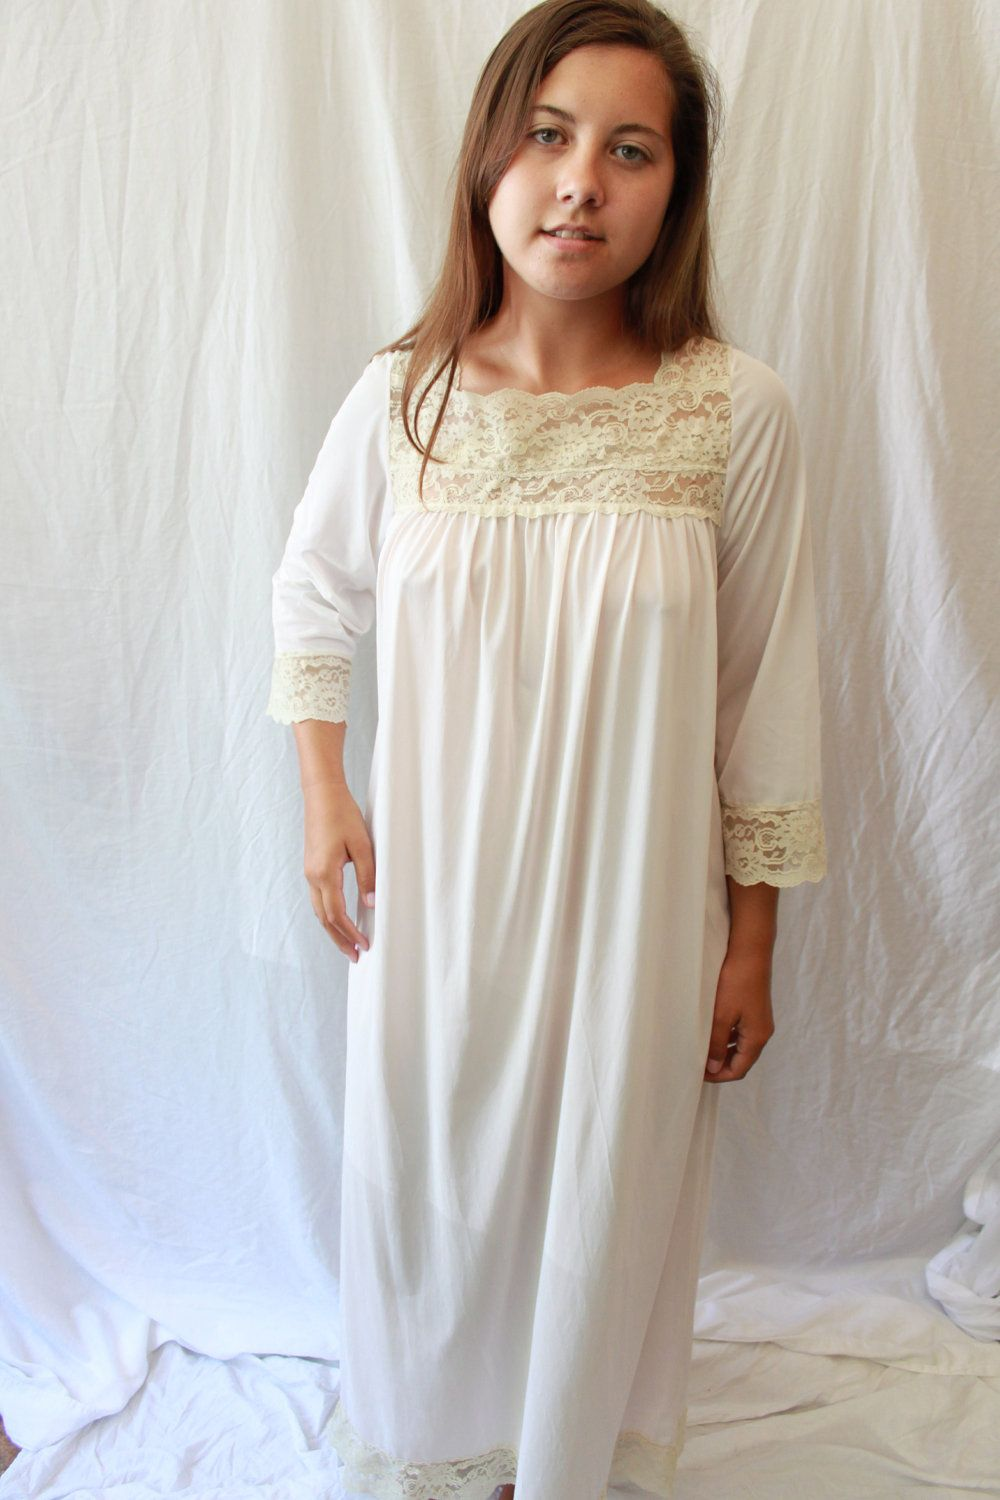 Vintage Nightgown With Lace Via Etsy Cold Summer Pinterest Vintage Nightgown